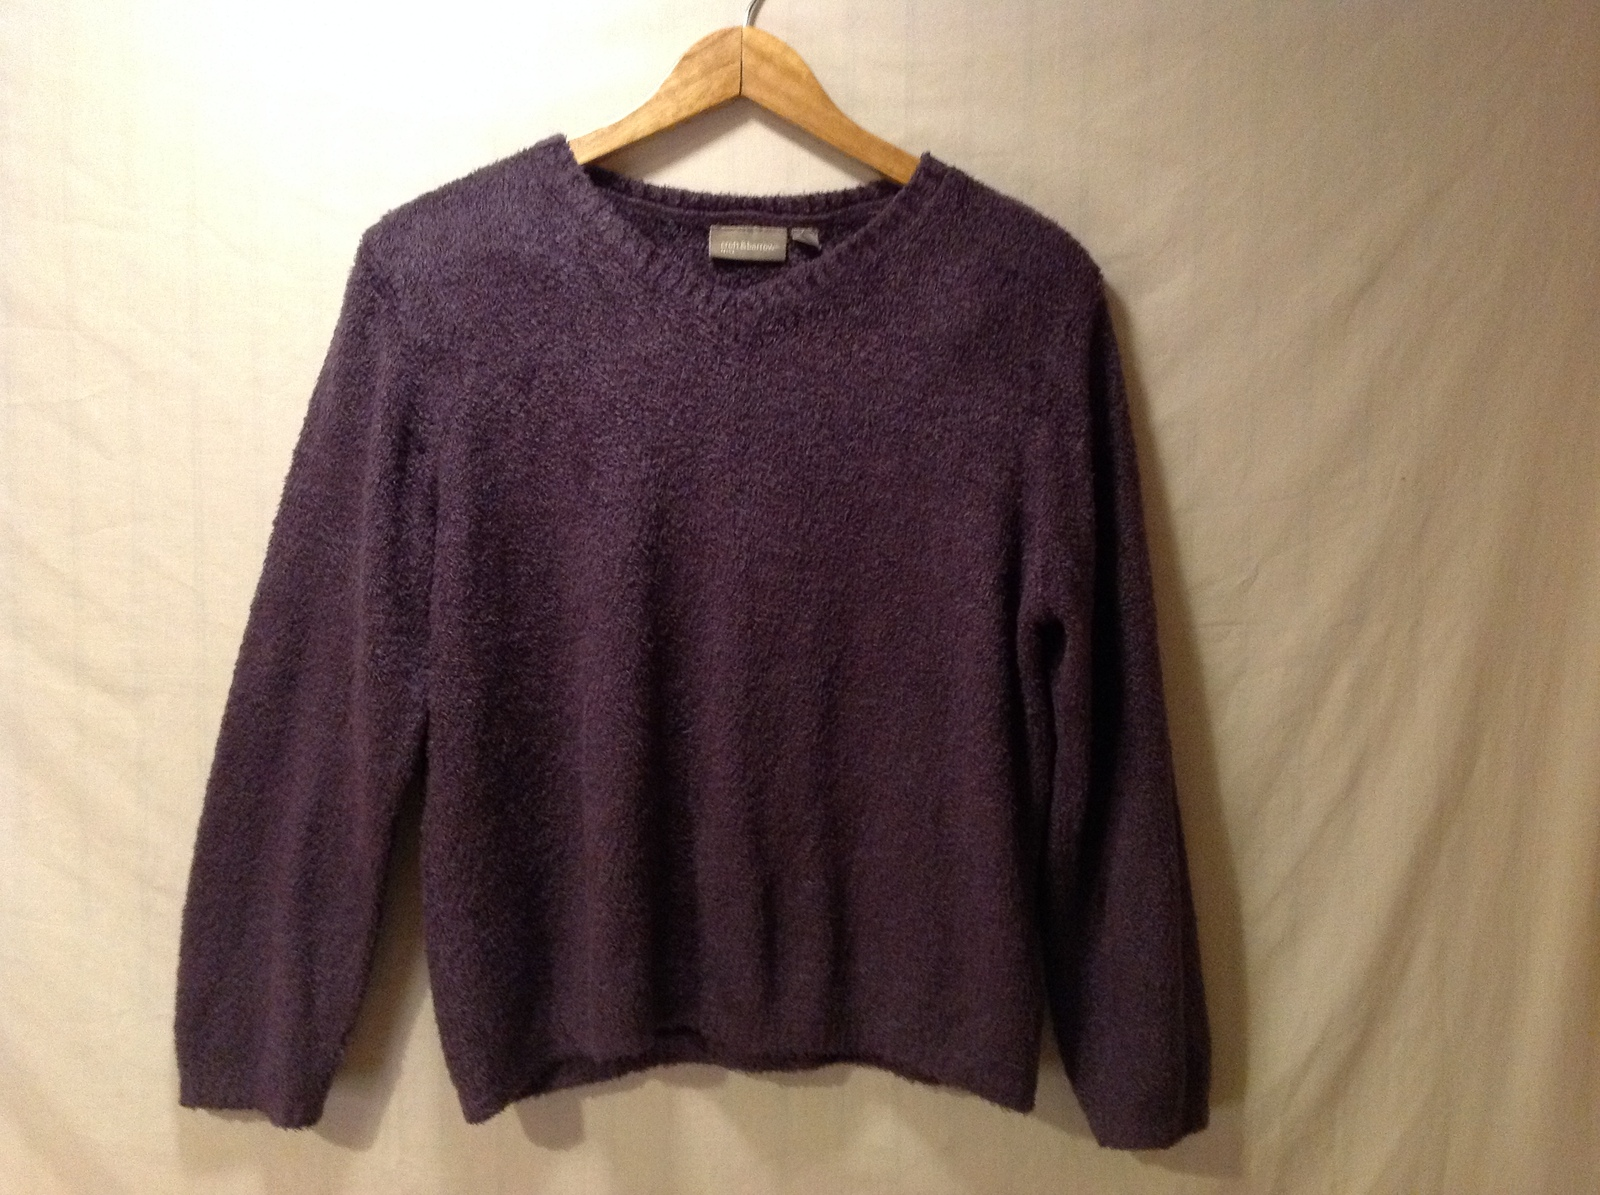 Croft & Borrow Womens Purple Pullover Sweater, Size Petite Large